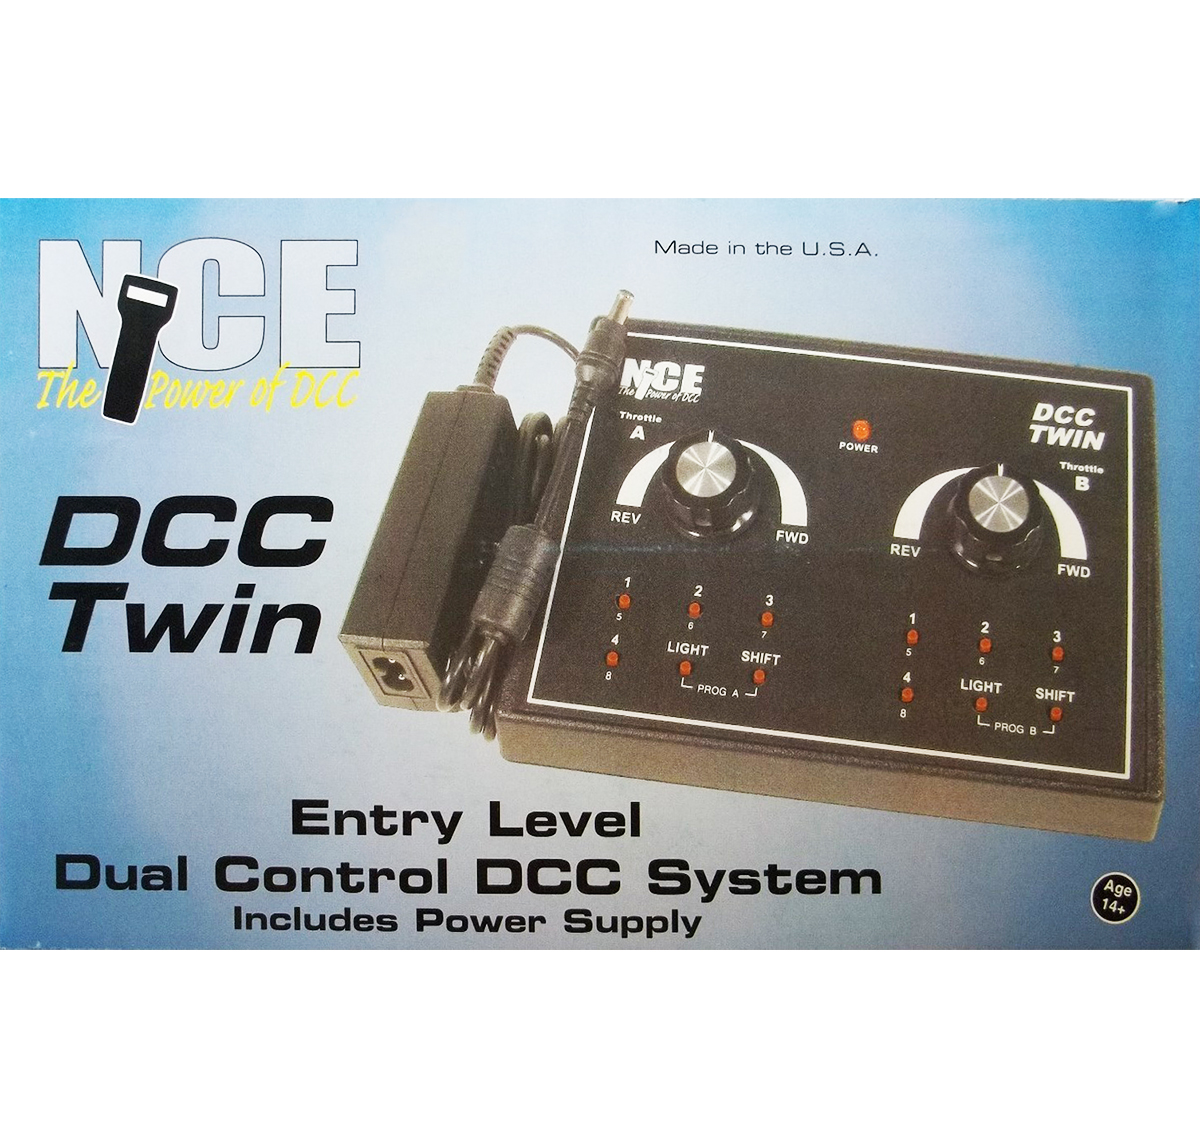 NCE DCC Twin UK